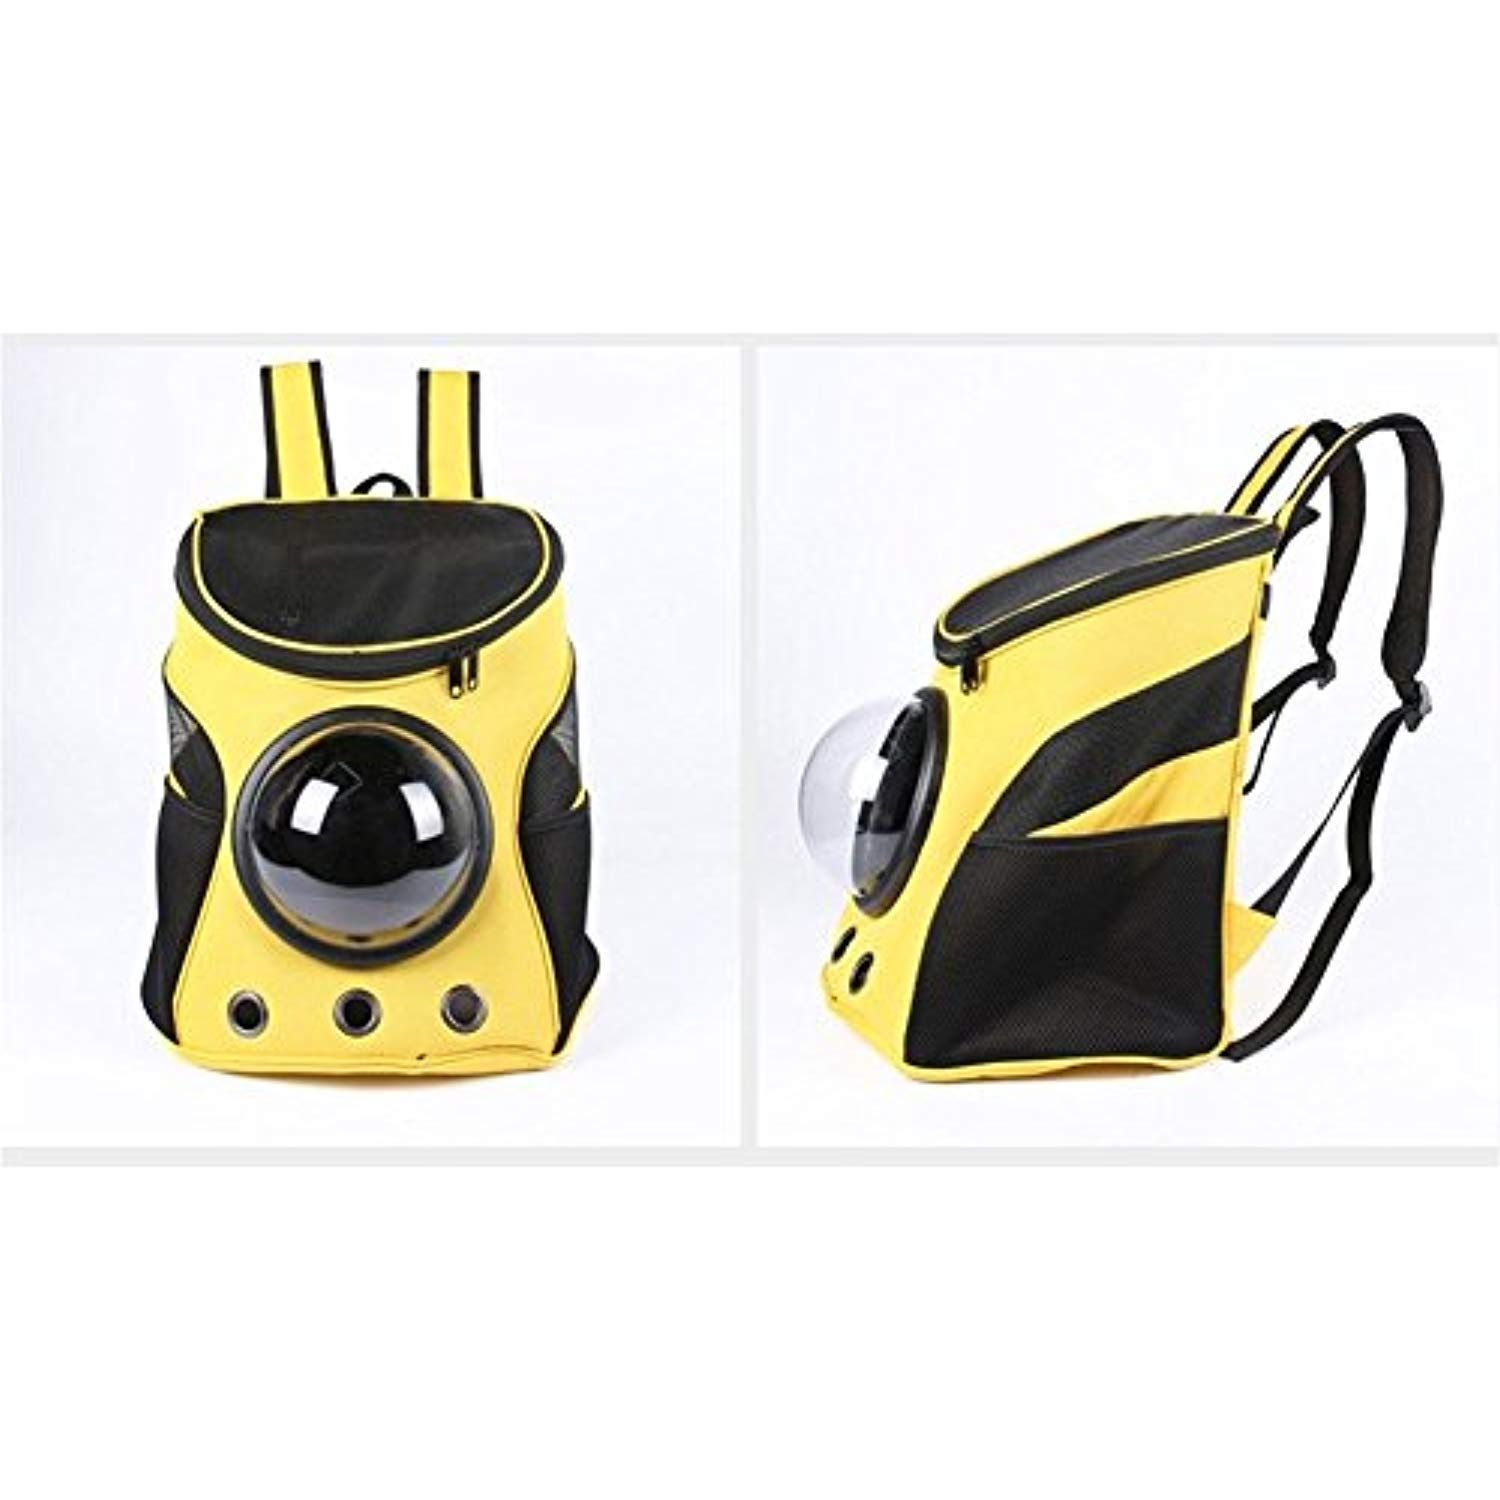 ccc94a2be56 Vedem Pet Durable Nylon Carrier Bag Cat Dog Traveler Bubble Backpack  (Yellow) * Find out more at the image link. #SmallAnimals